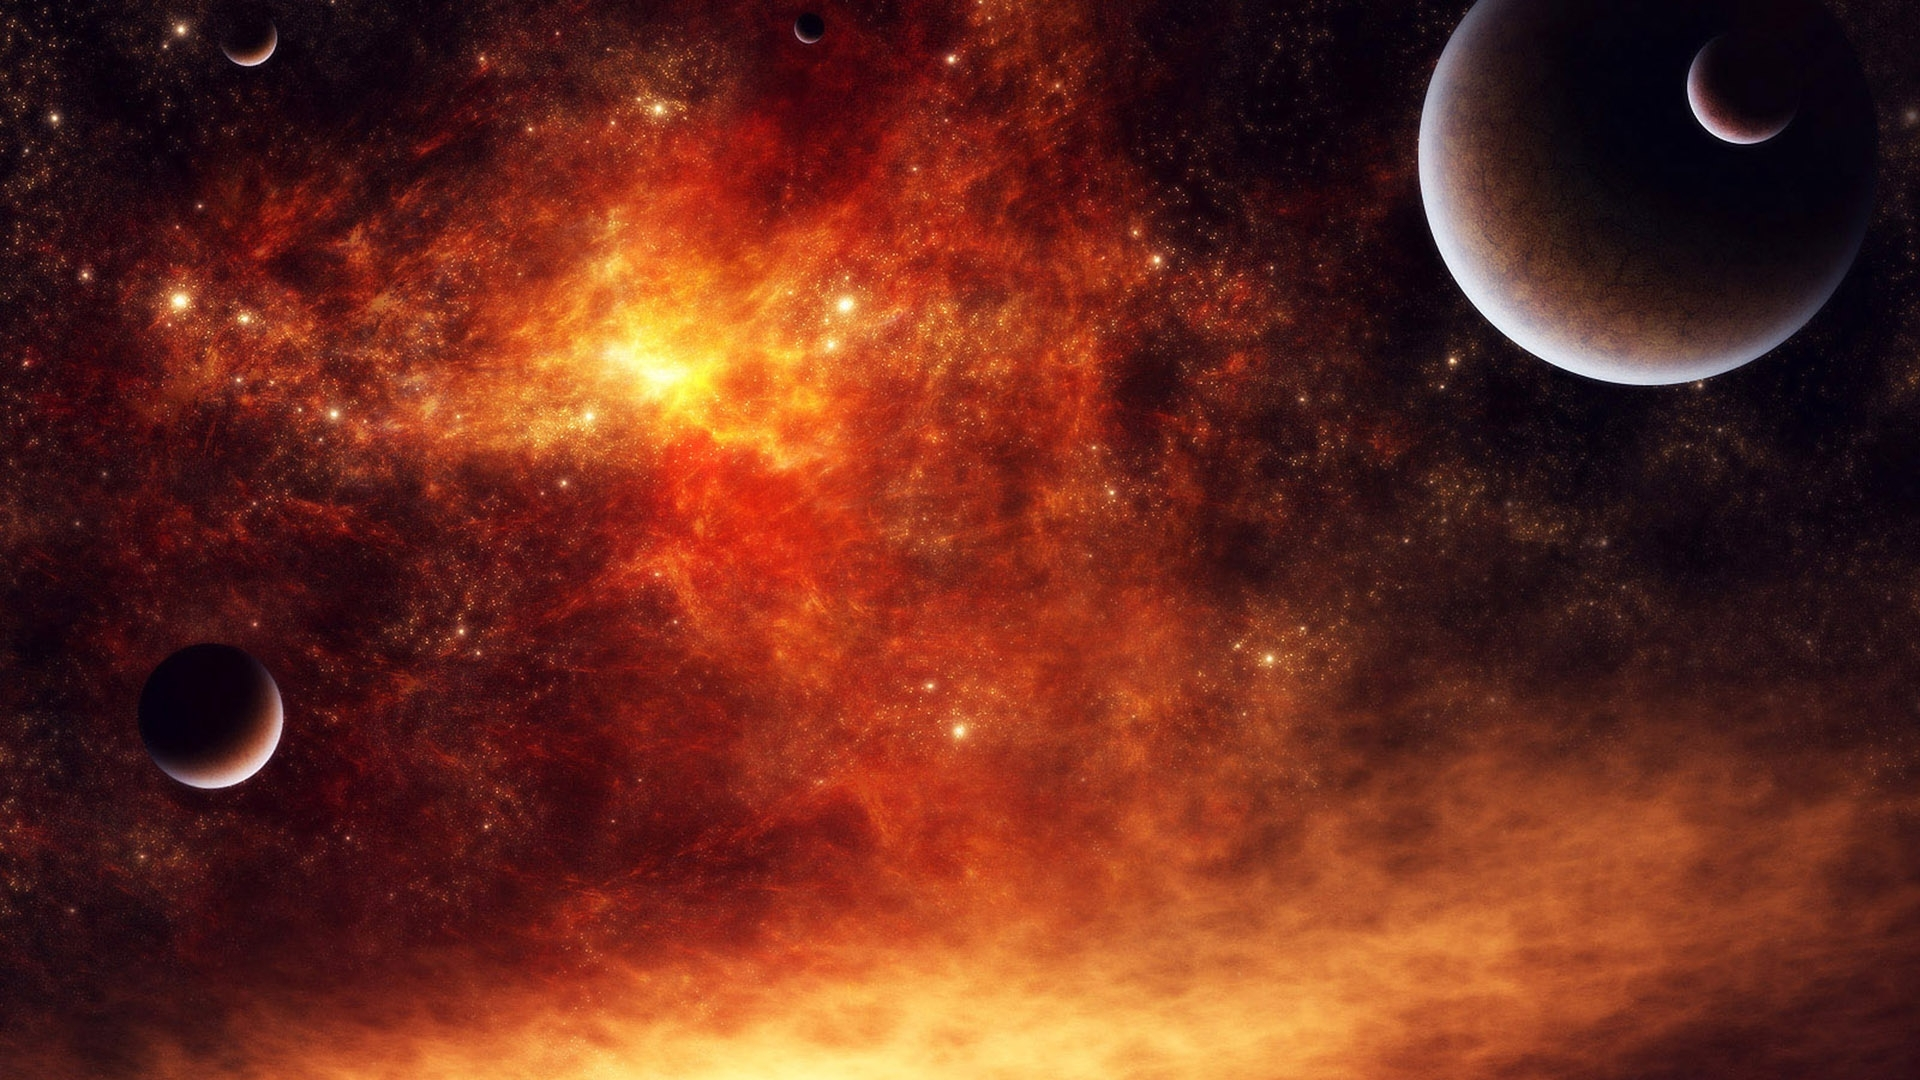 45928 download wallpaper Fantasy, Planets, Universe screensavers and pictures for free